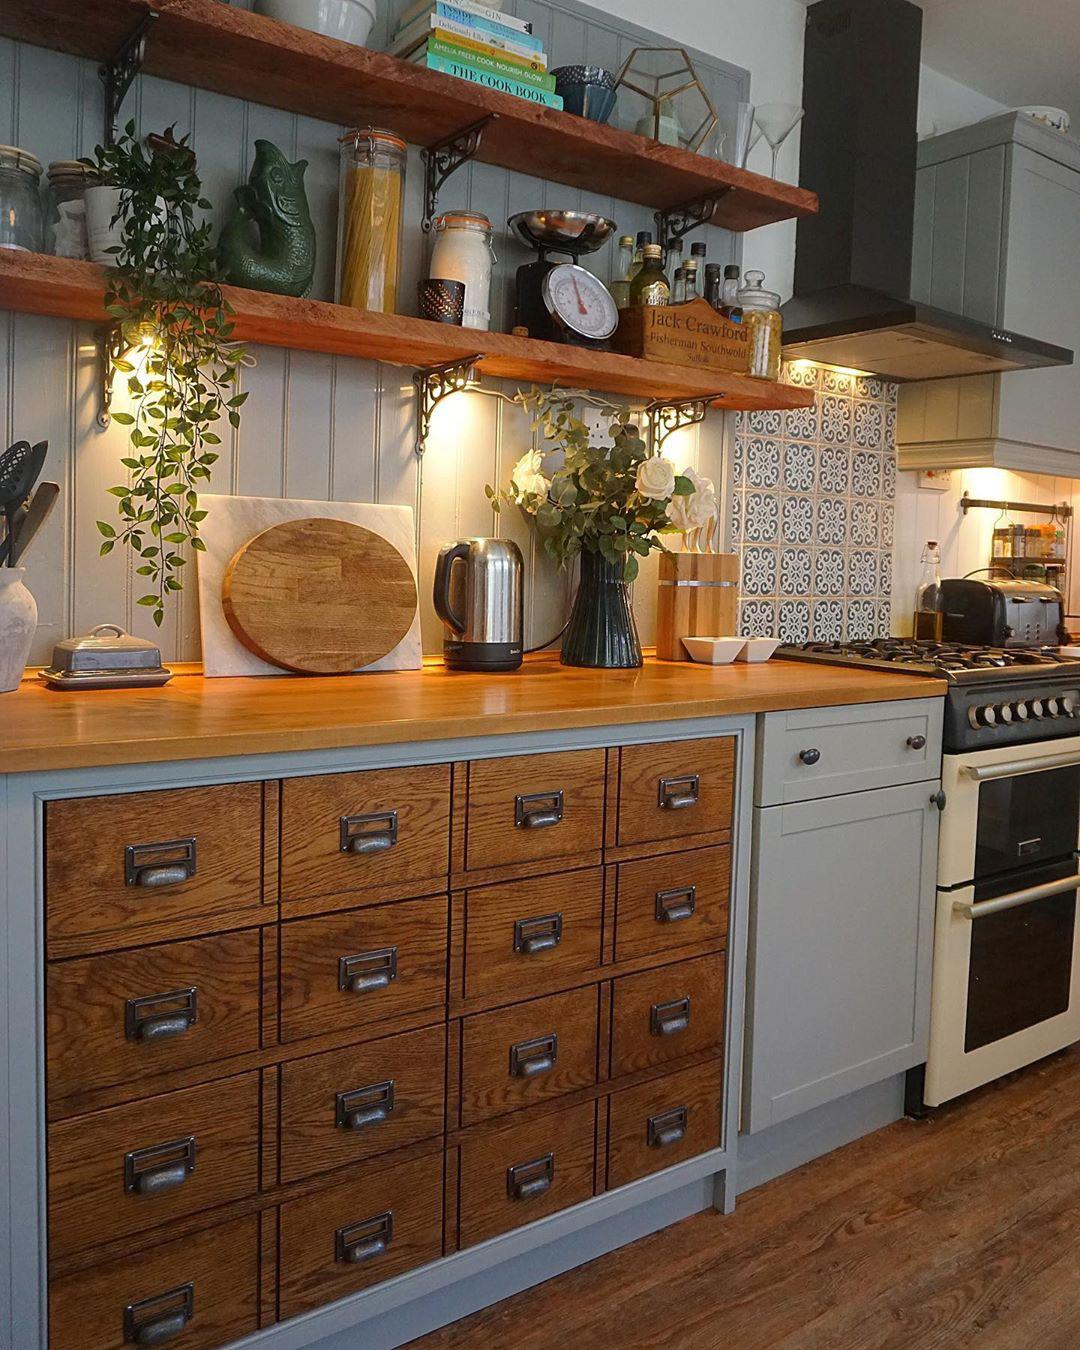 Inspiring Kitchen Design Ideas For Your Home - Page 16 of 35 - Liatsy Fashion